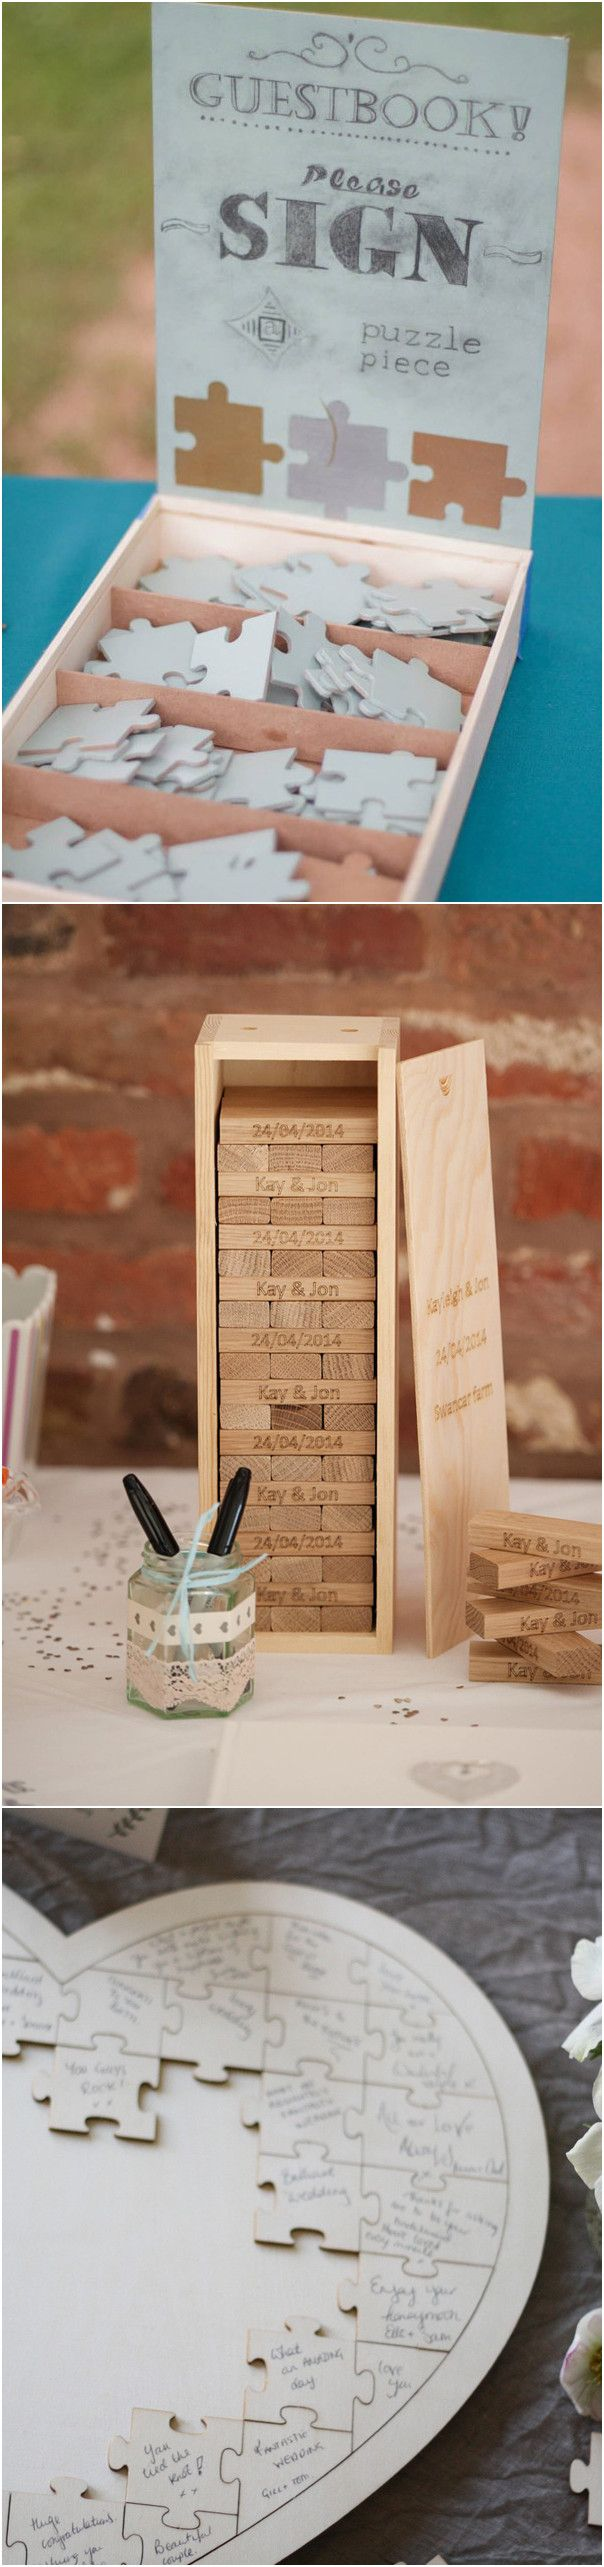 puzzles and jenga pieces unique wedding guest book ideas